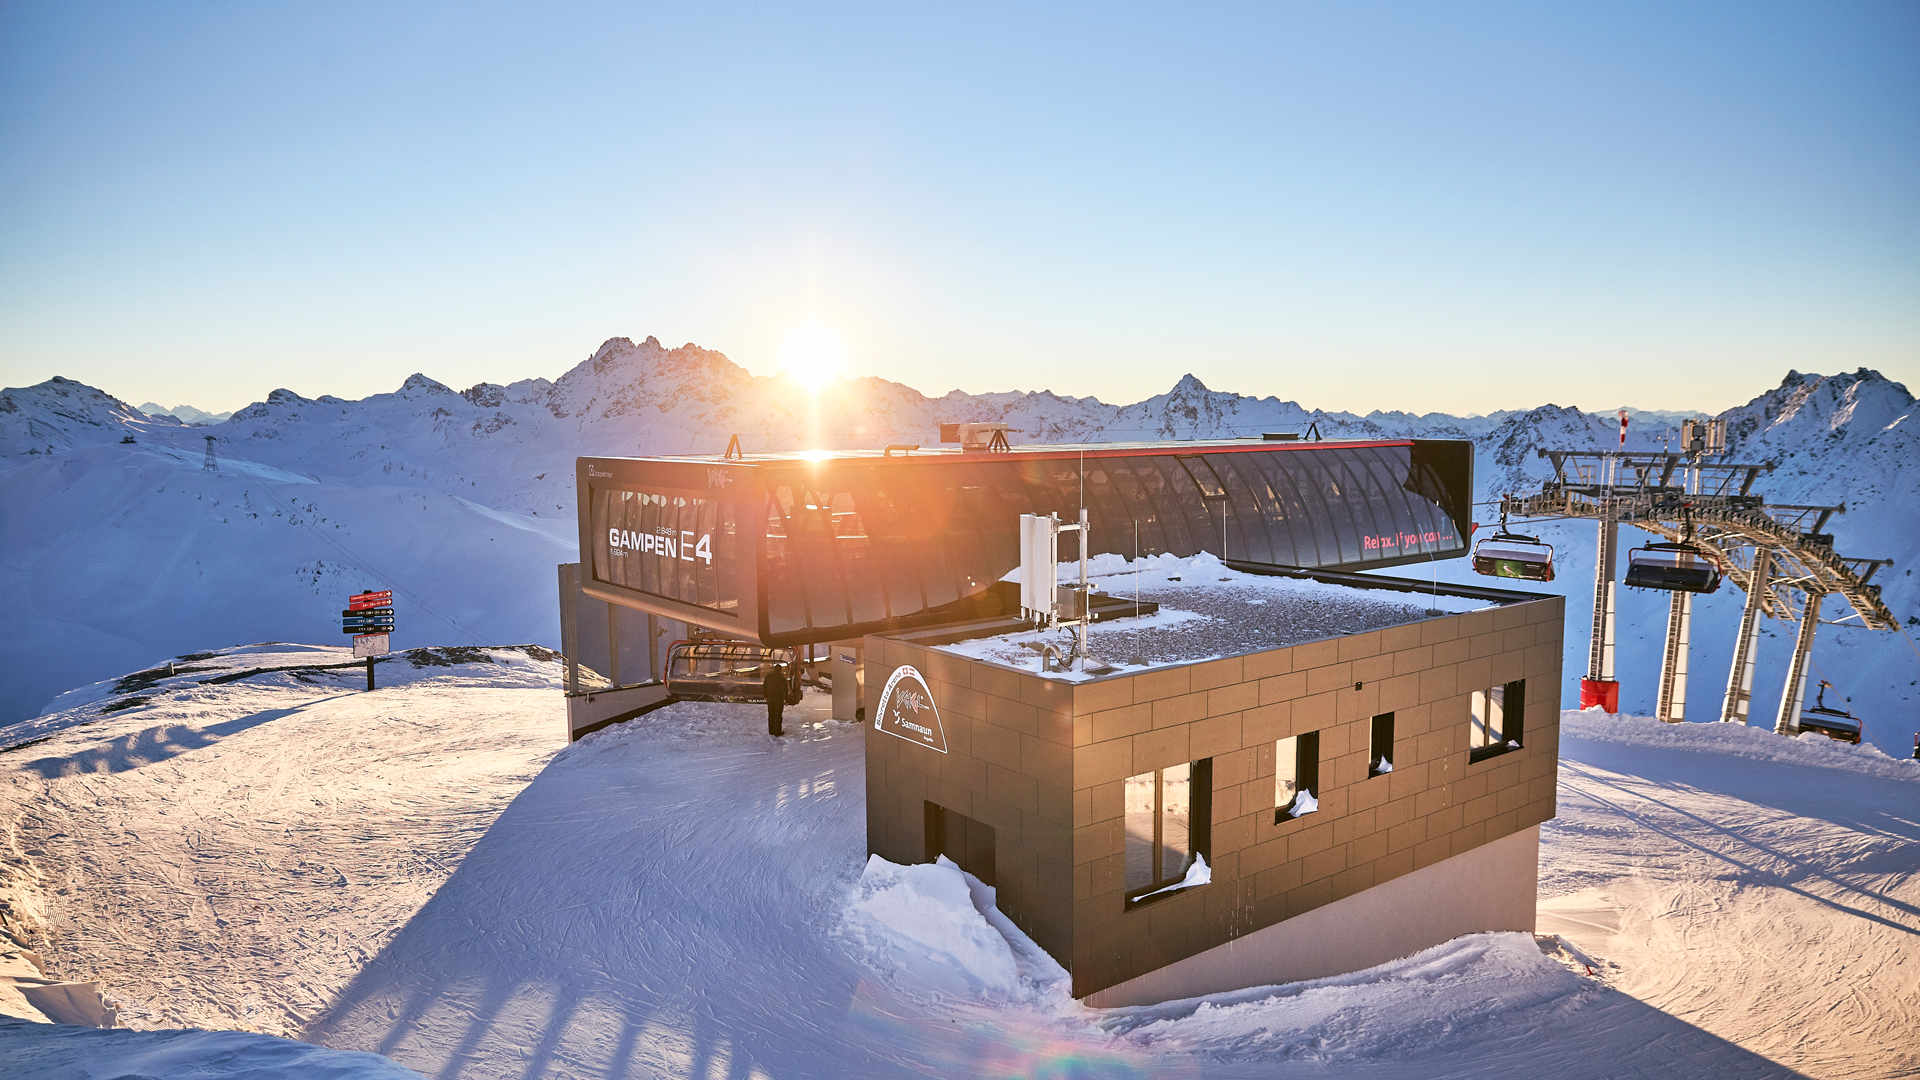 Wallpapers From Ischgl Samnaun For Pc And Smartphone Ischgl Com